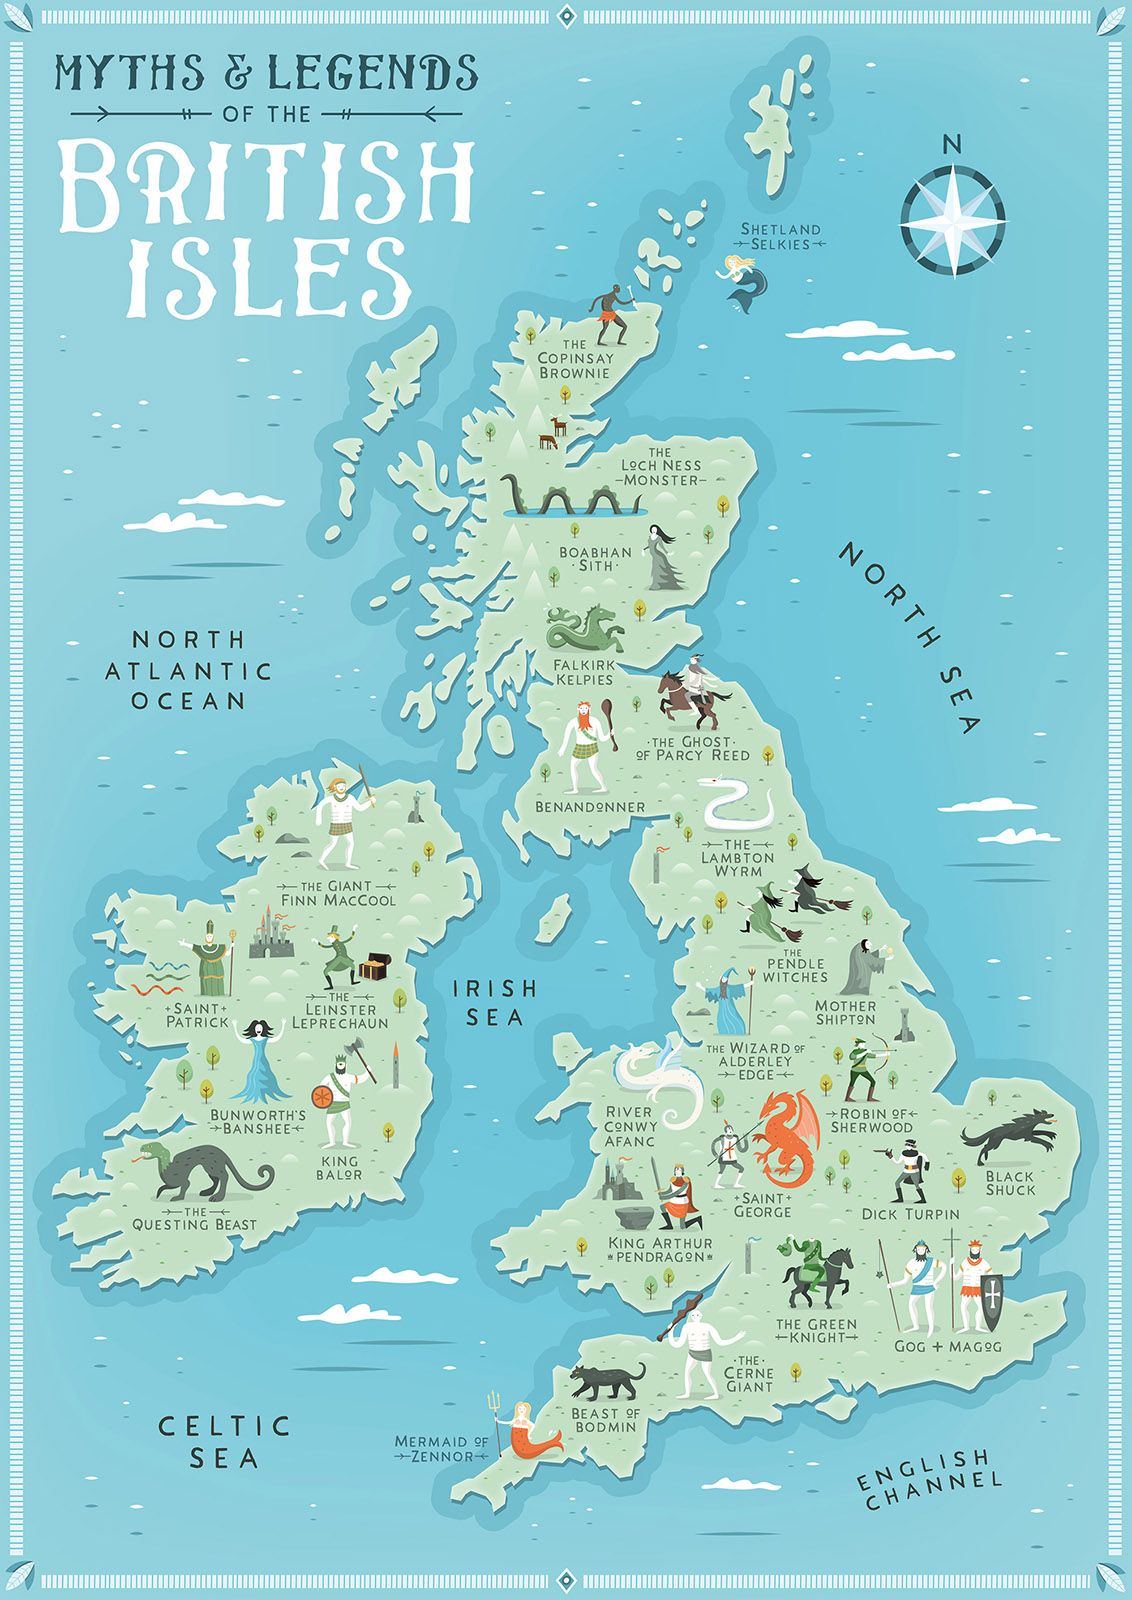 Myths And Legends Of The British Isles Illustrated Map